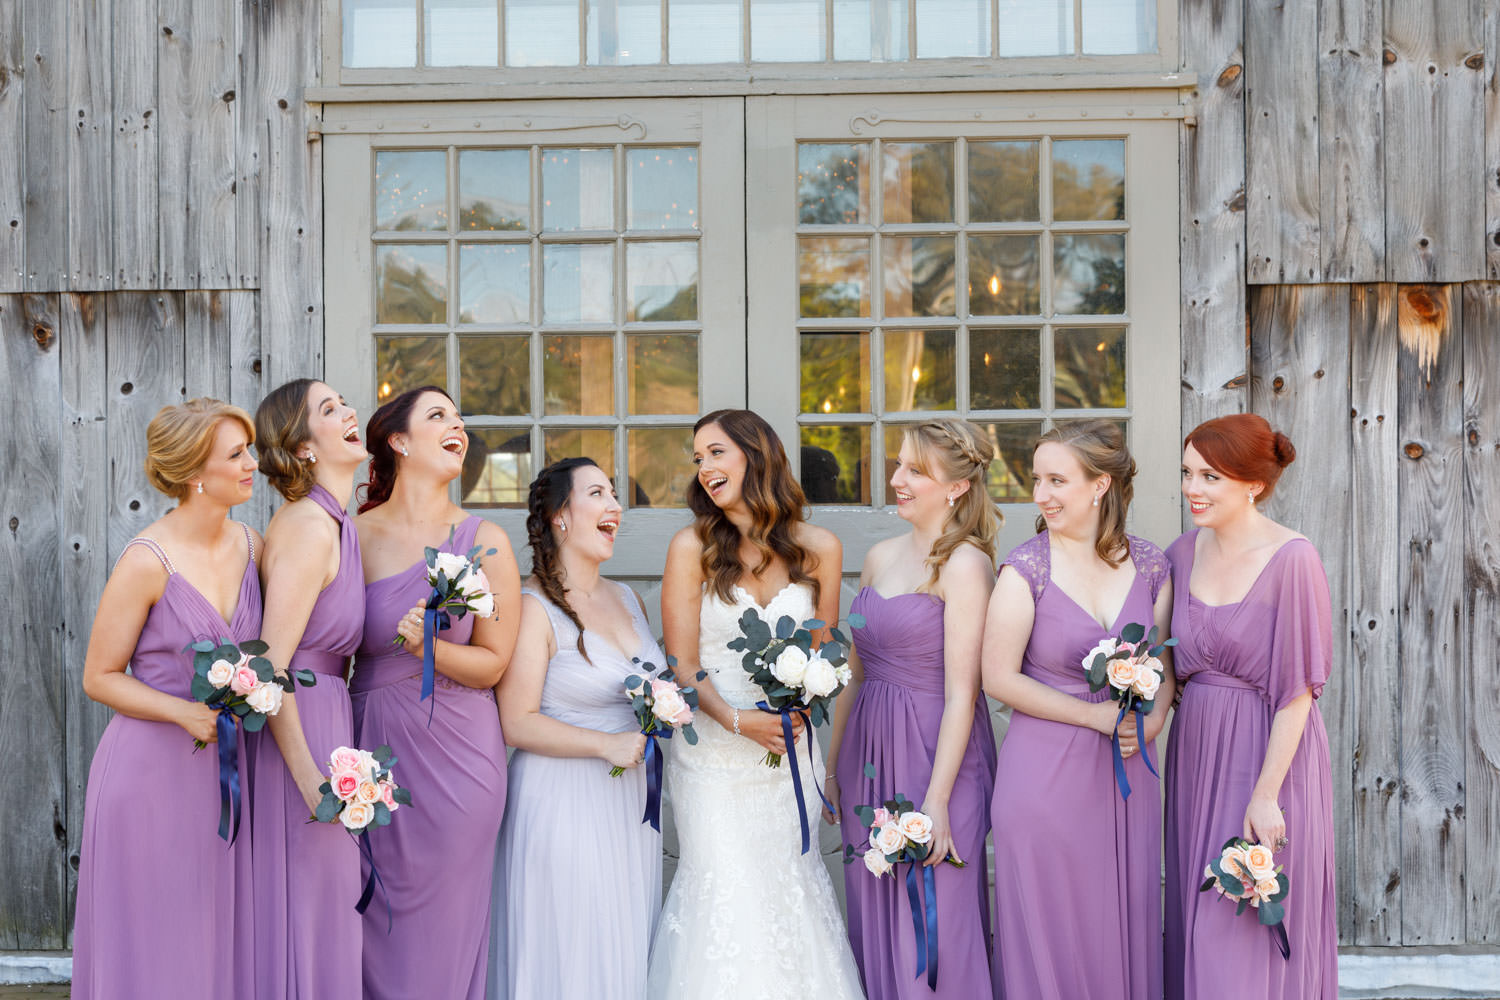 Bride with bridesmaids laughing in front of the barn.